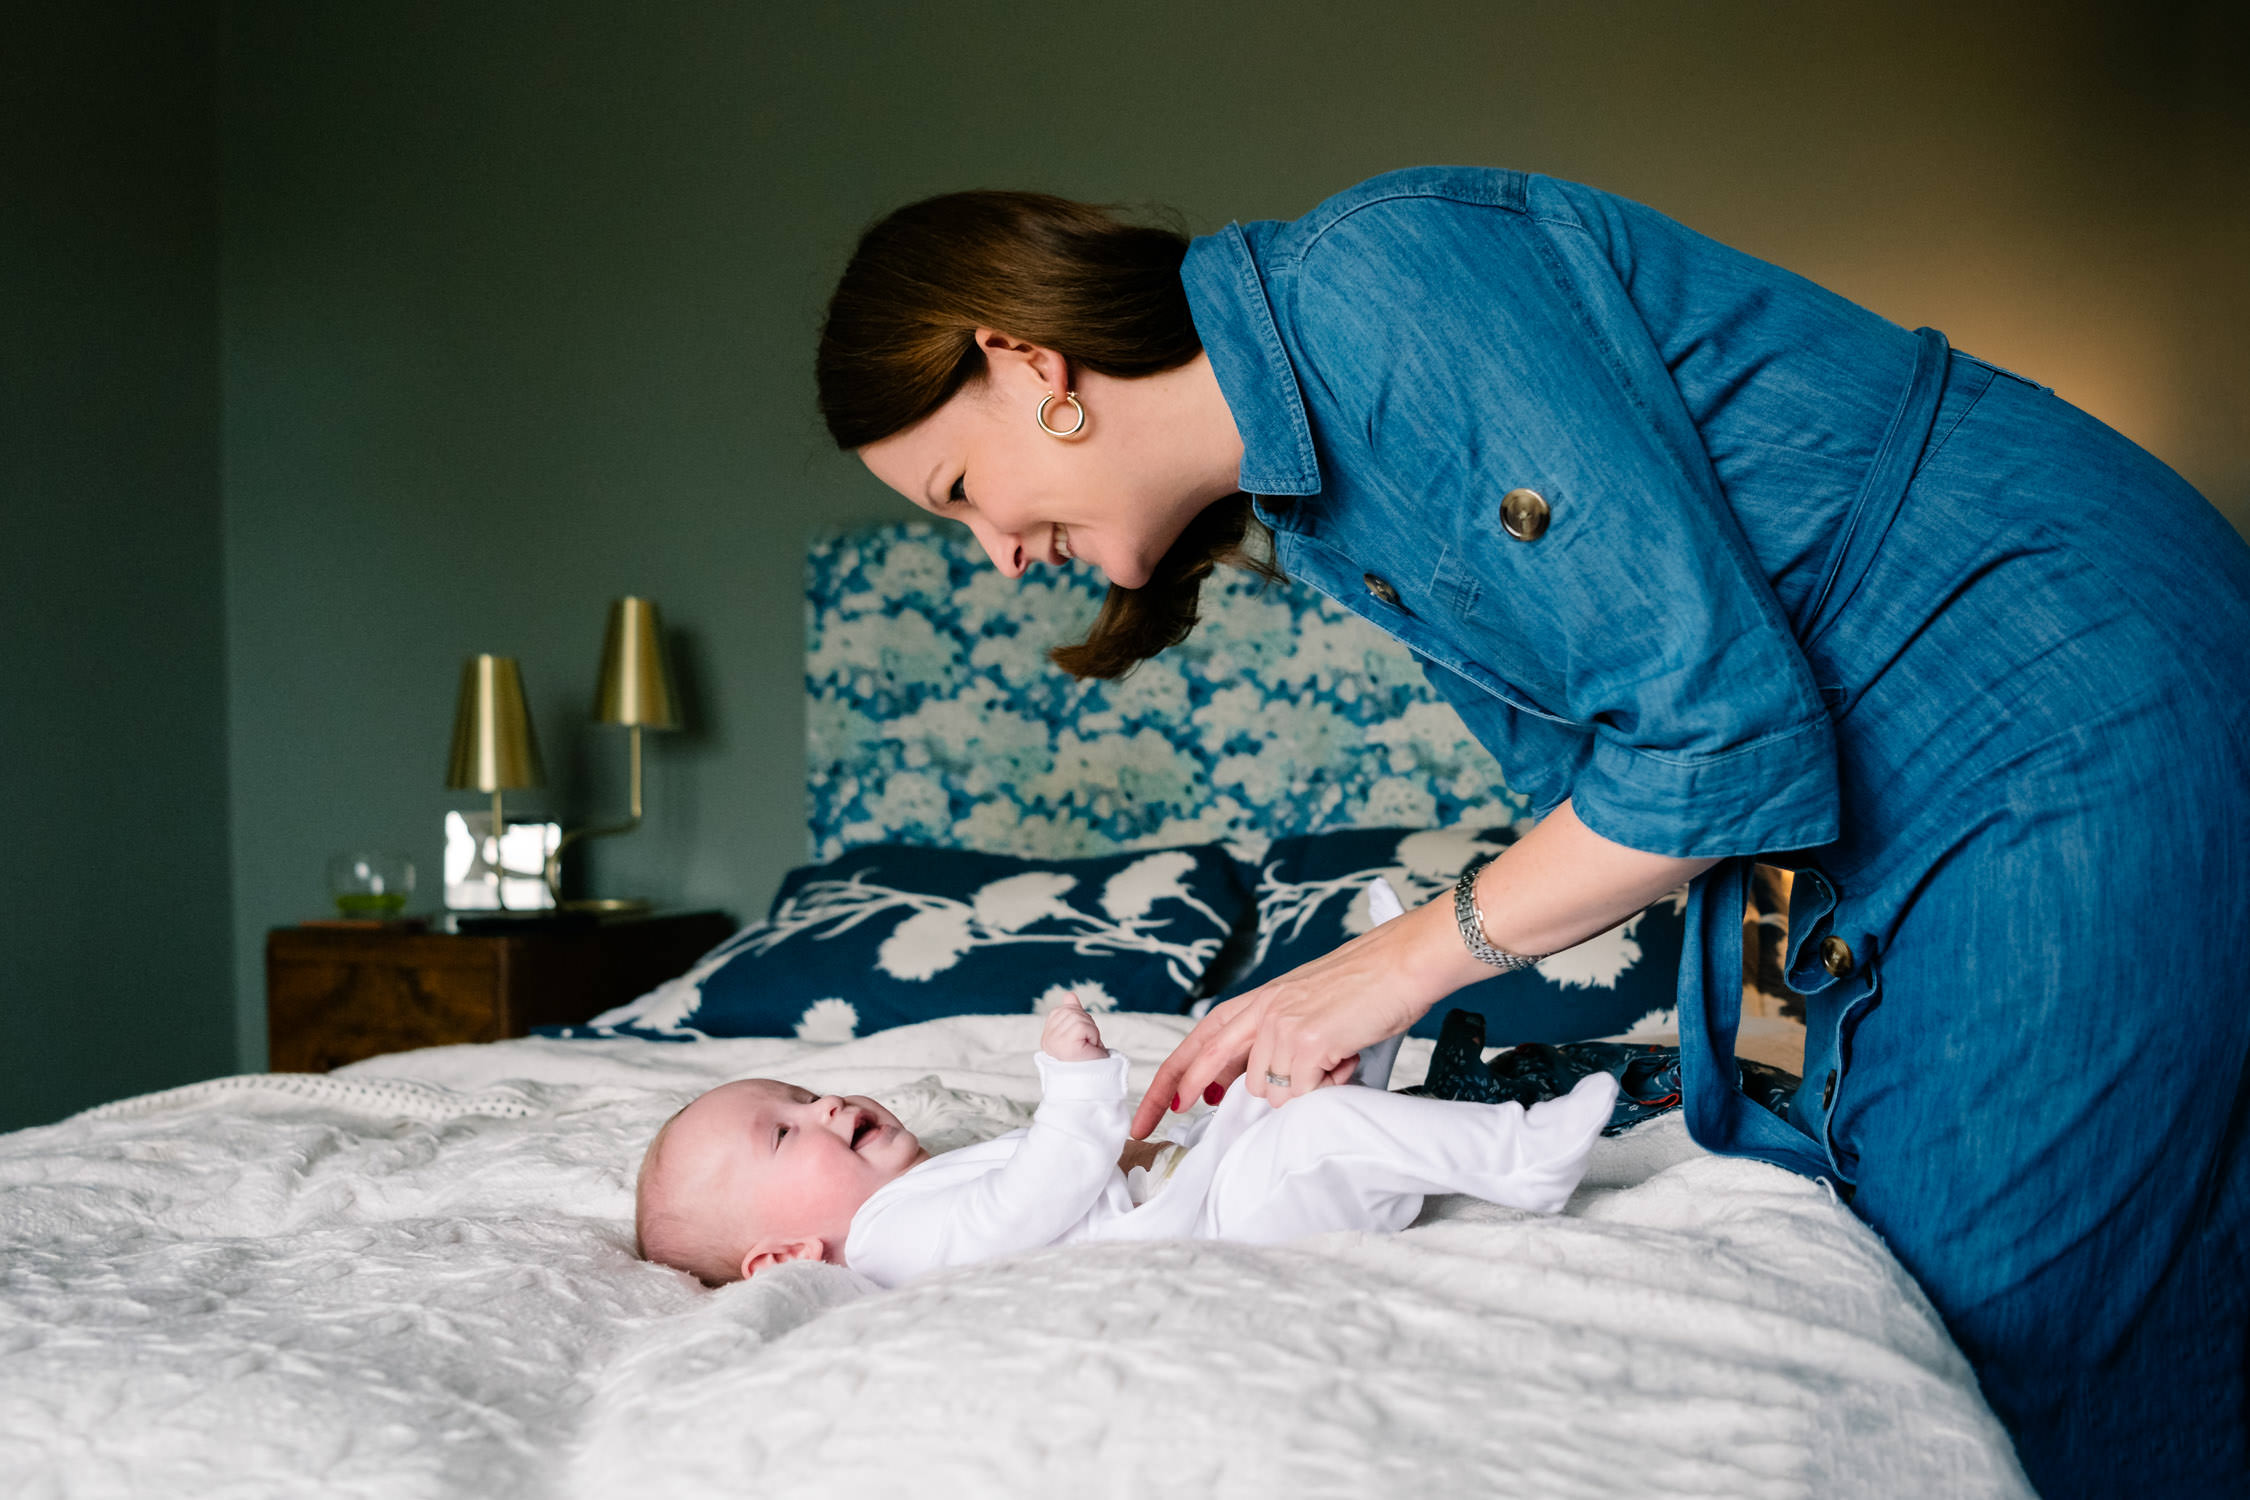 Mother leaning over a baby lying on the bed